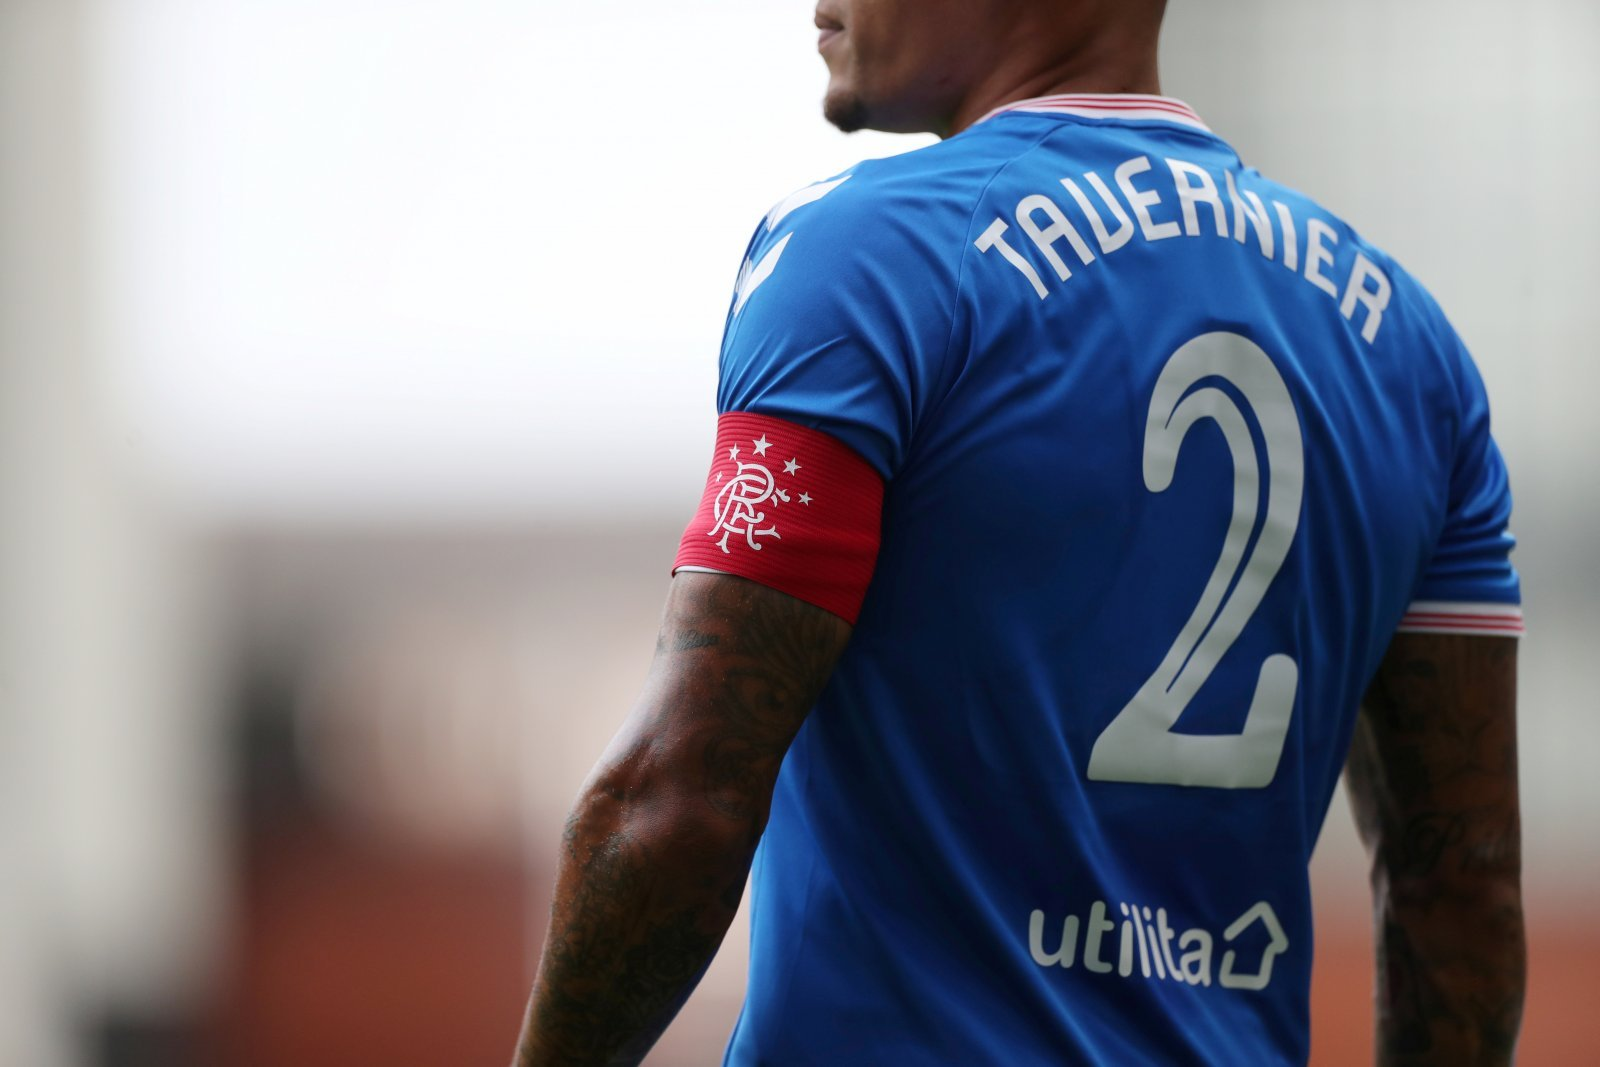 Rangers: Fans unanimous in cause of James Tavernier's recent problems